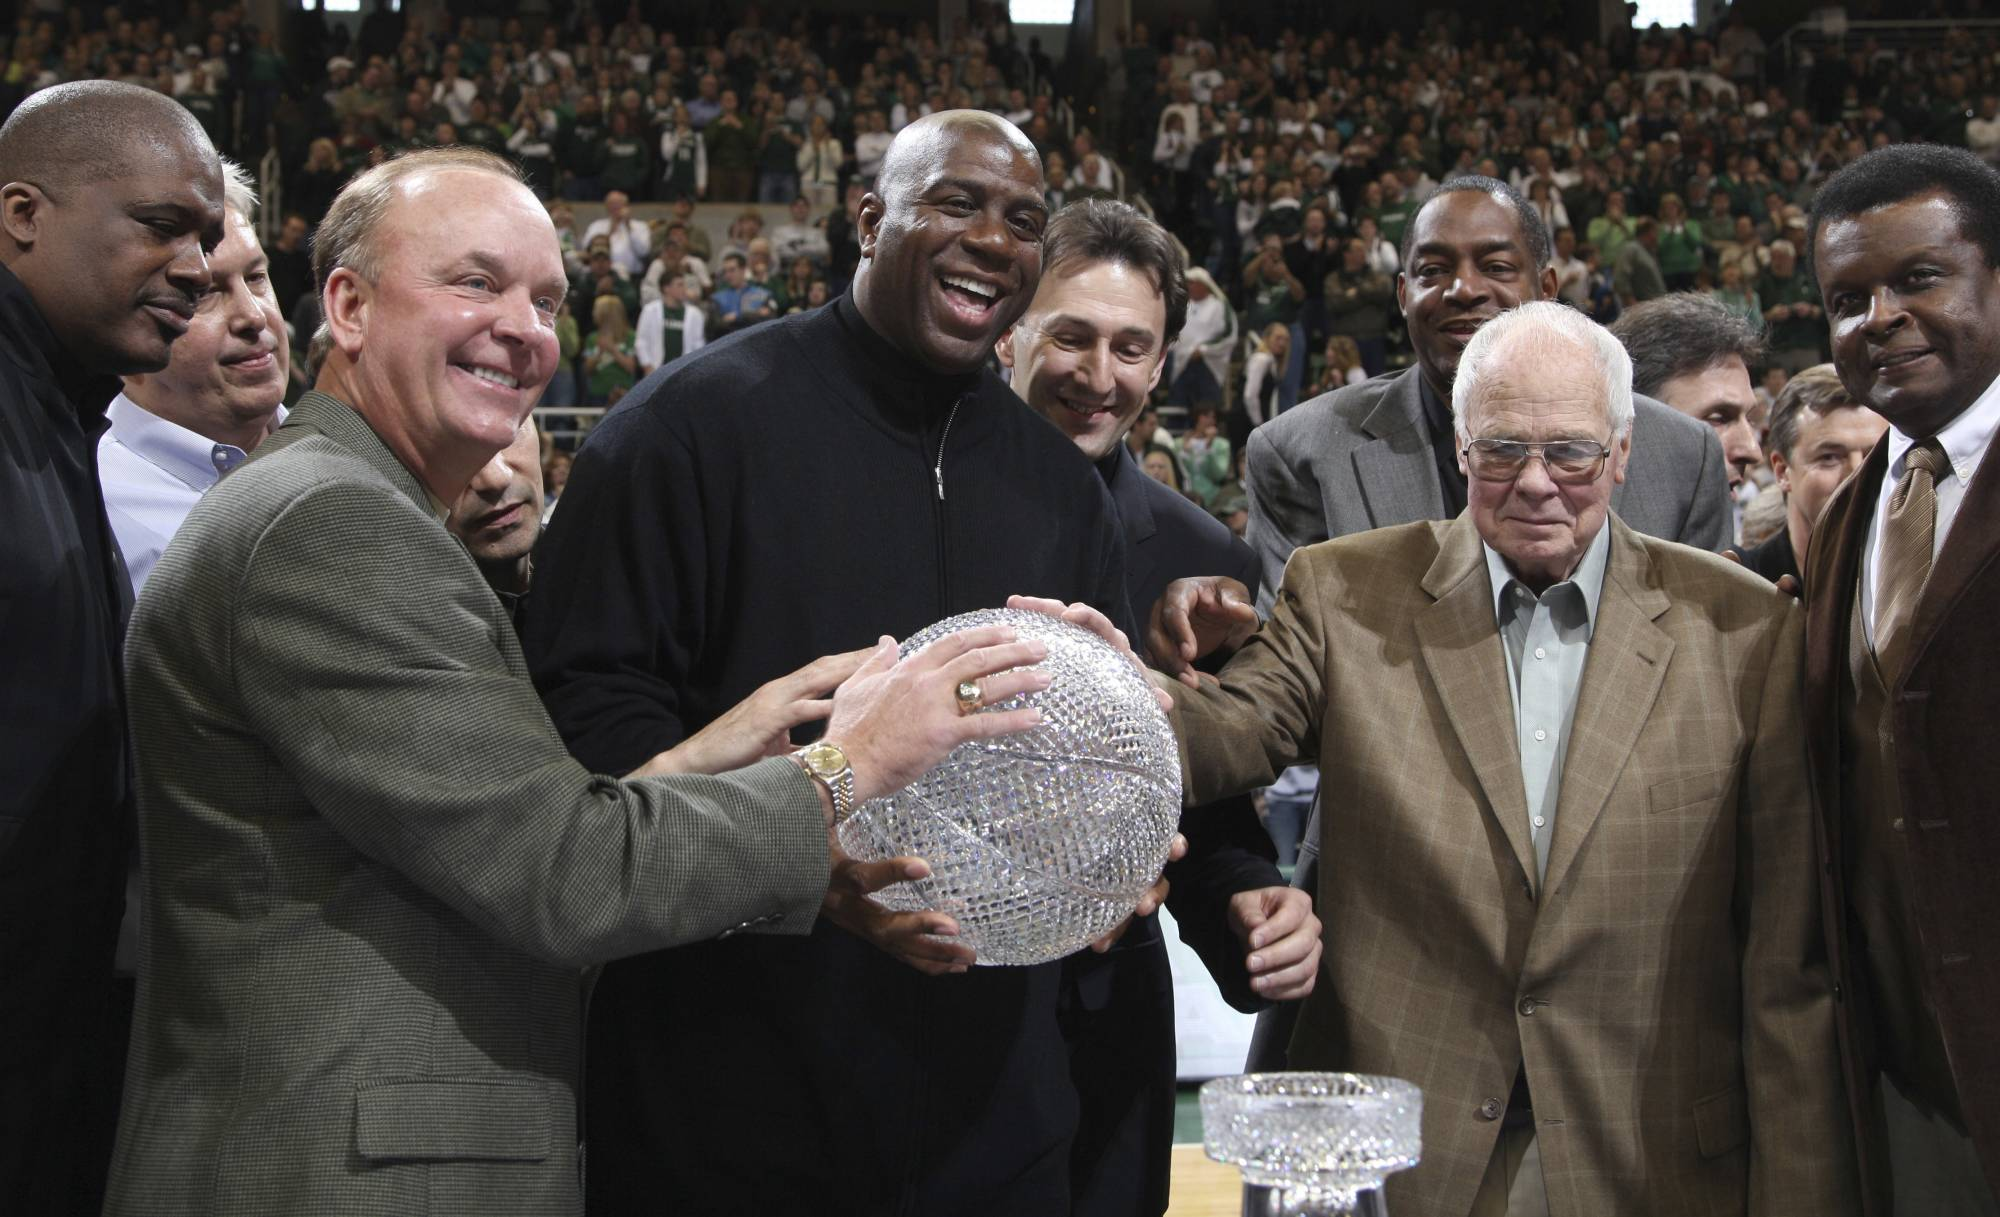 Jud Heathcote Who Led Michigan State And Magic Johnson To The 1979 NCAA Championship Has Died He Was 90 School Announced Monday In